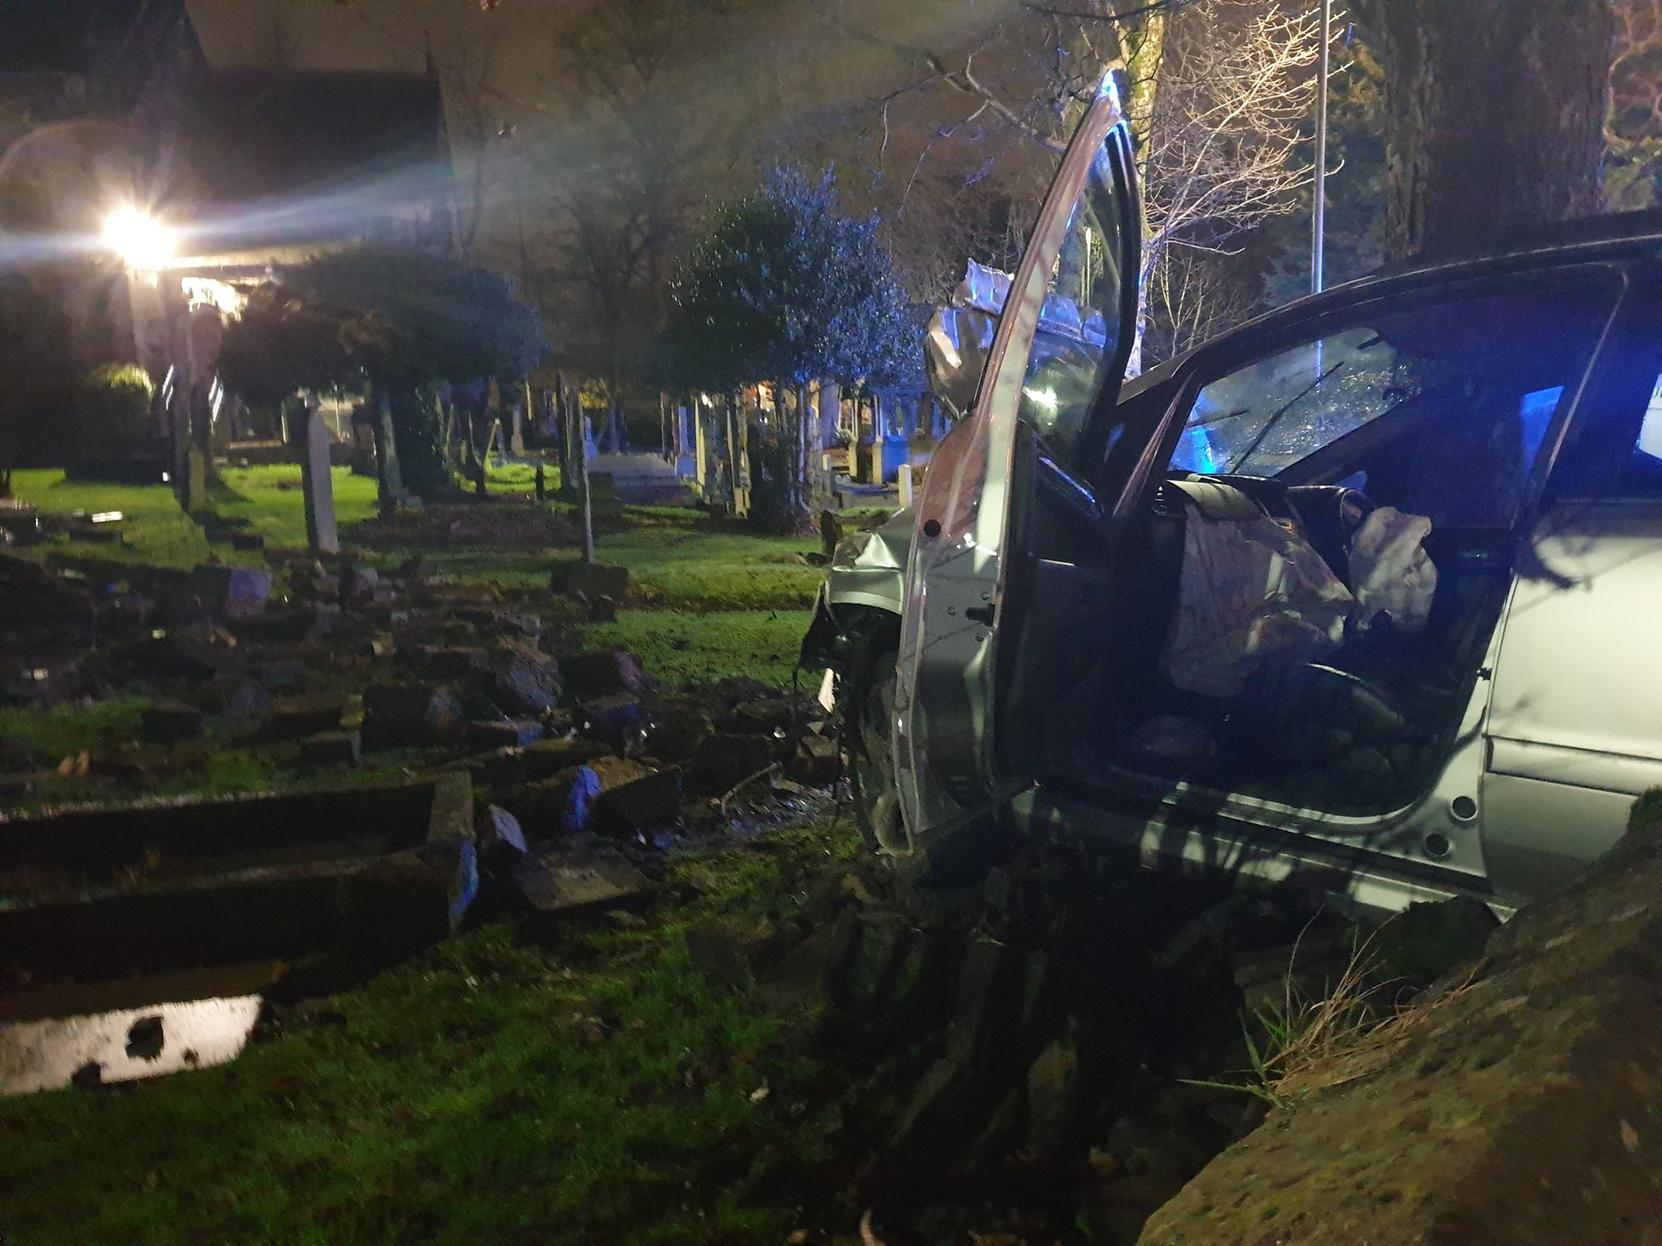 Drink driver destroys headstones after plowing into graveyard